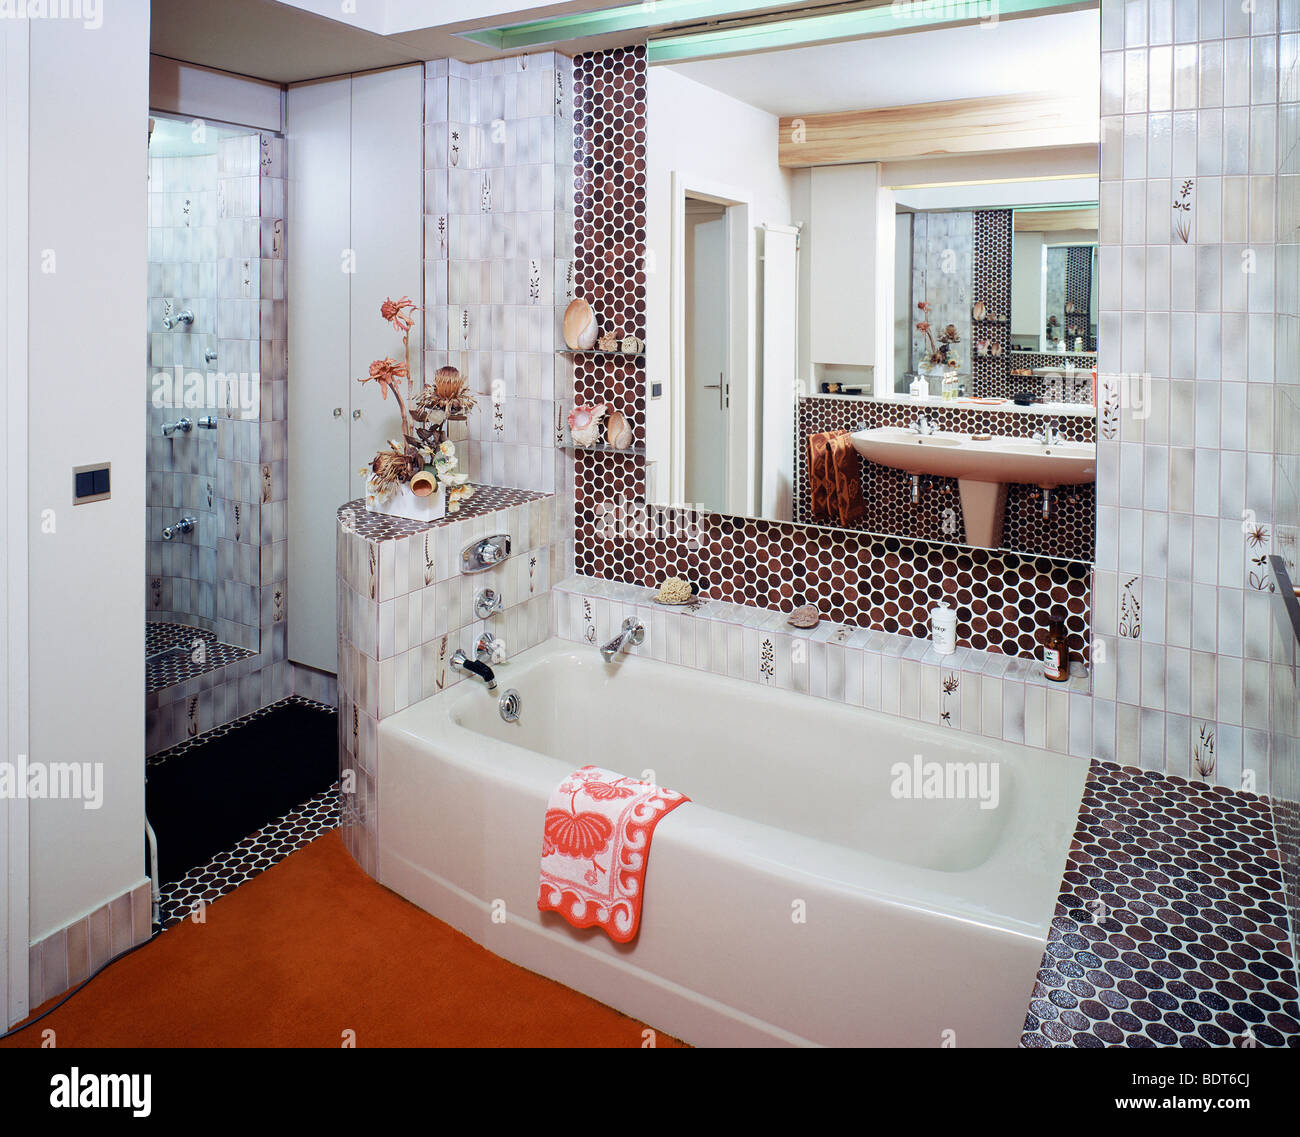 1970s Bathroom with white tiling Stock Photo: 25732802 - Alamy